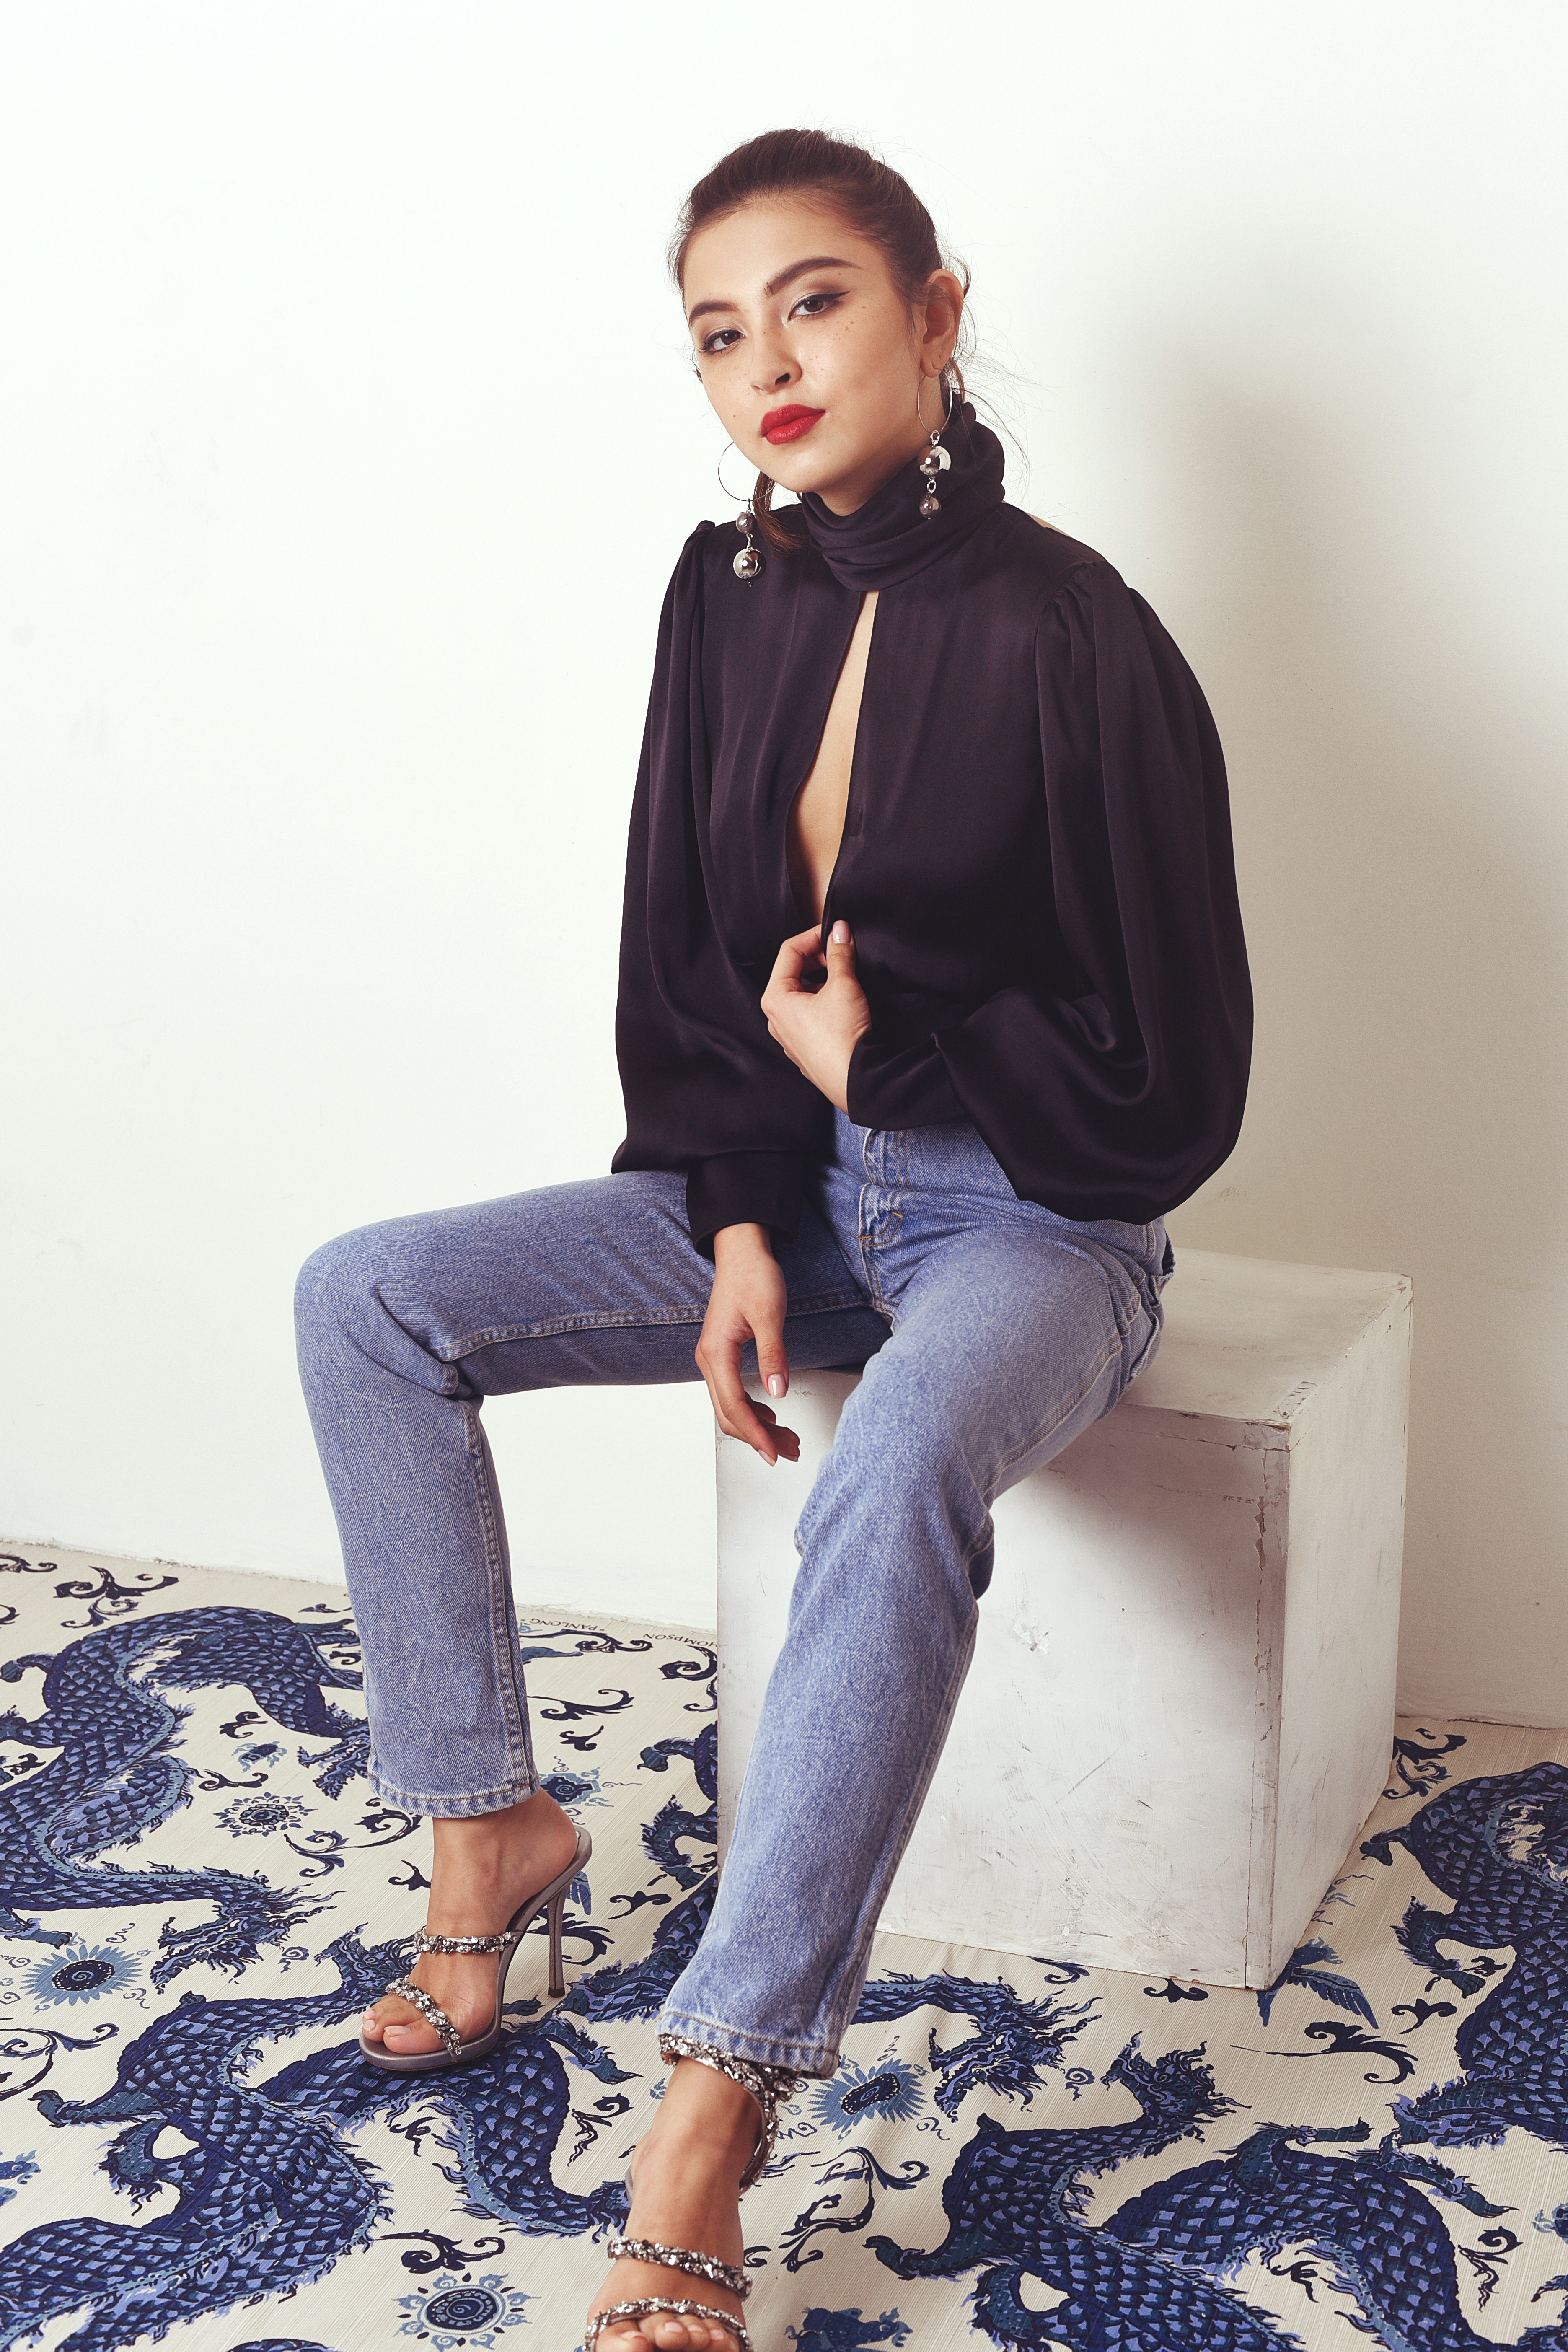 Night Out top by Orseund Iris, denim by Eckhaus Latta, pearl earrings by Mounser all available at Net a Porter; heels by Rene Caovilla